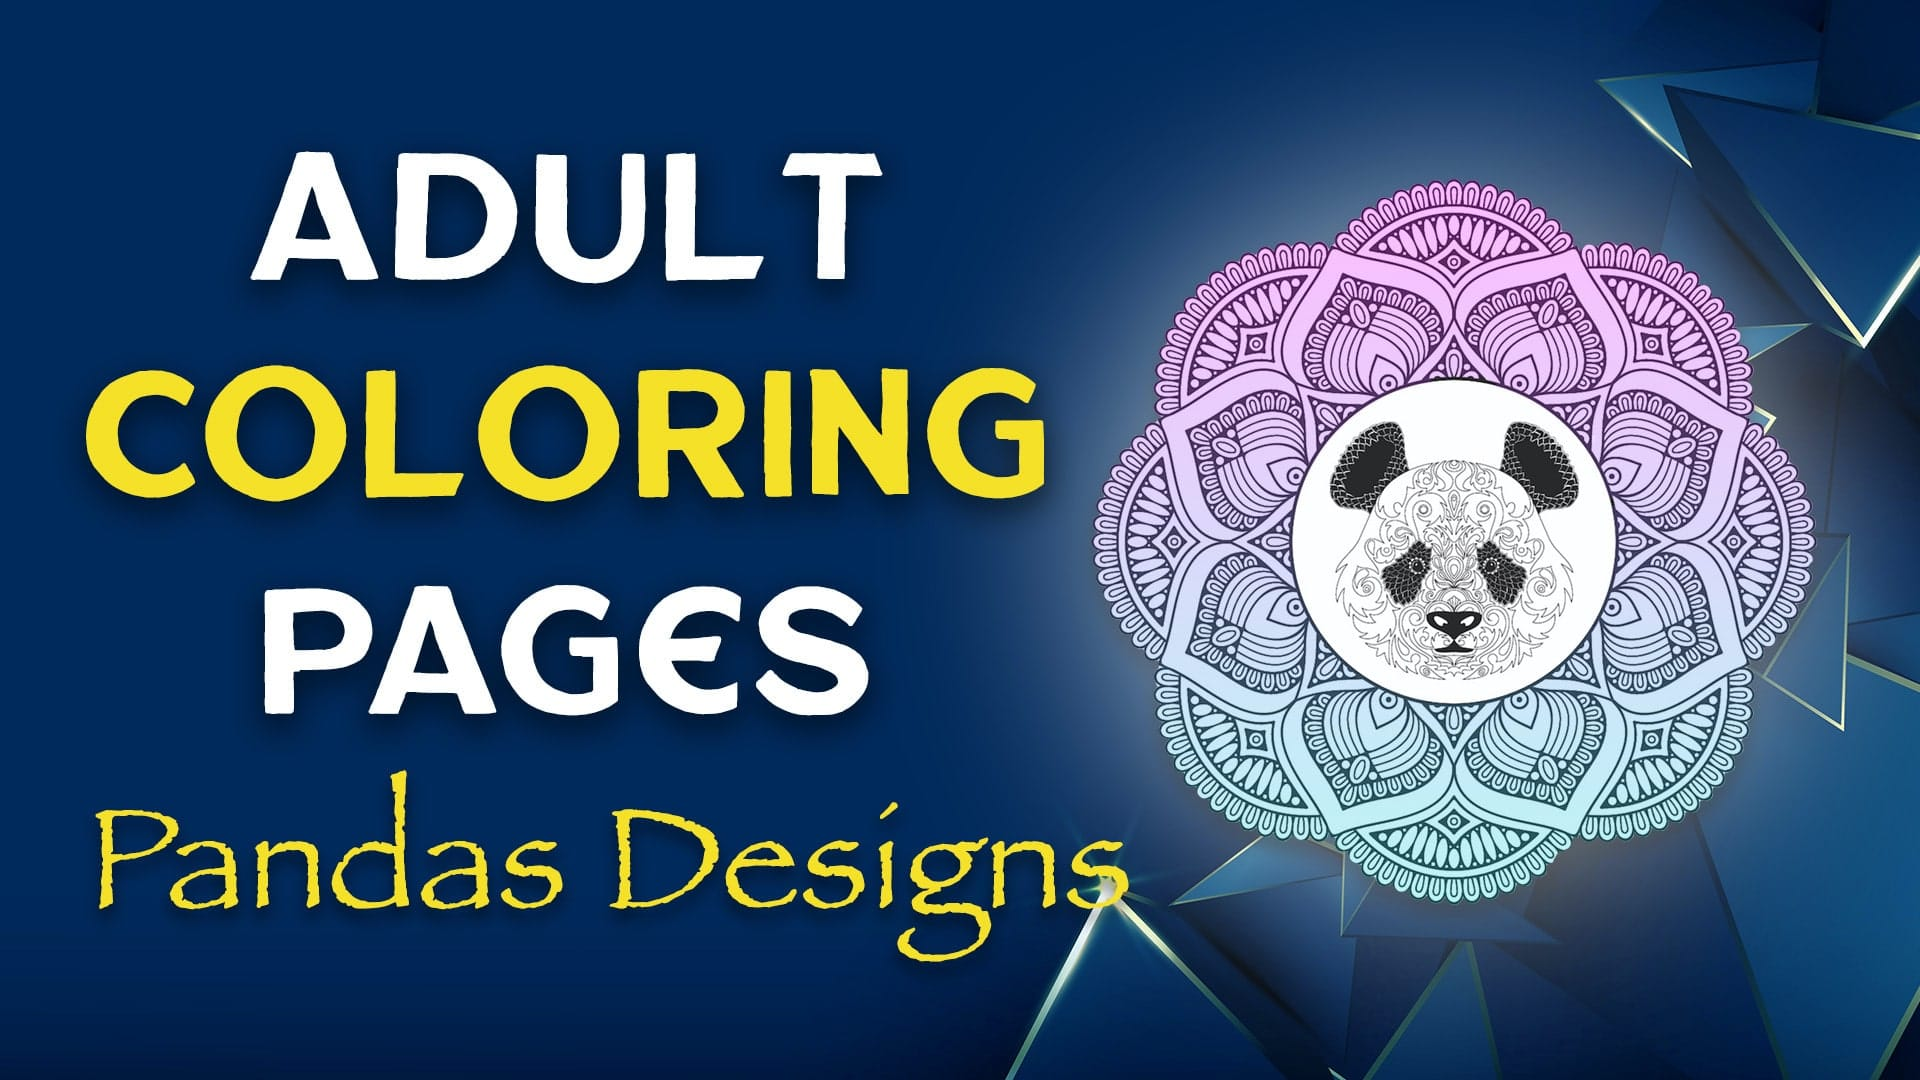 Adult-Coloring-Pages-Book-Panda-Designs-free-printable-color-panda-designs-sheets-for-adults